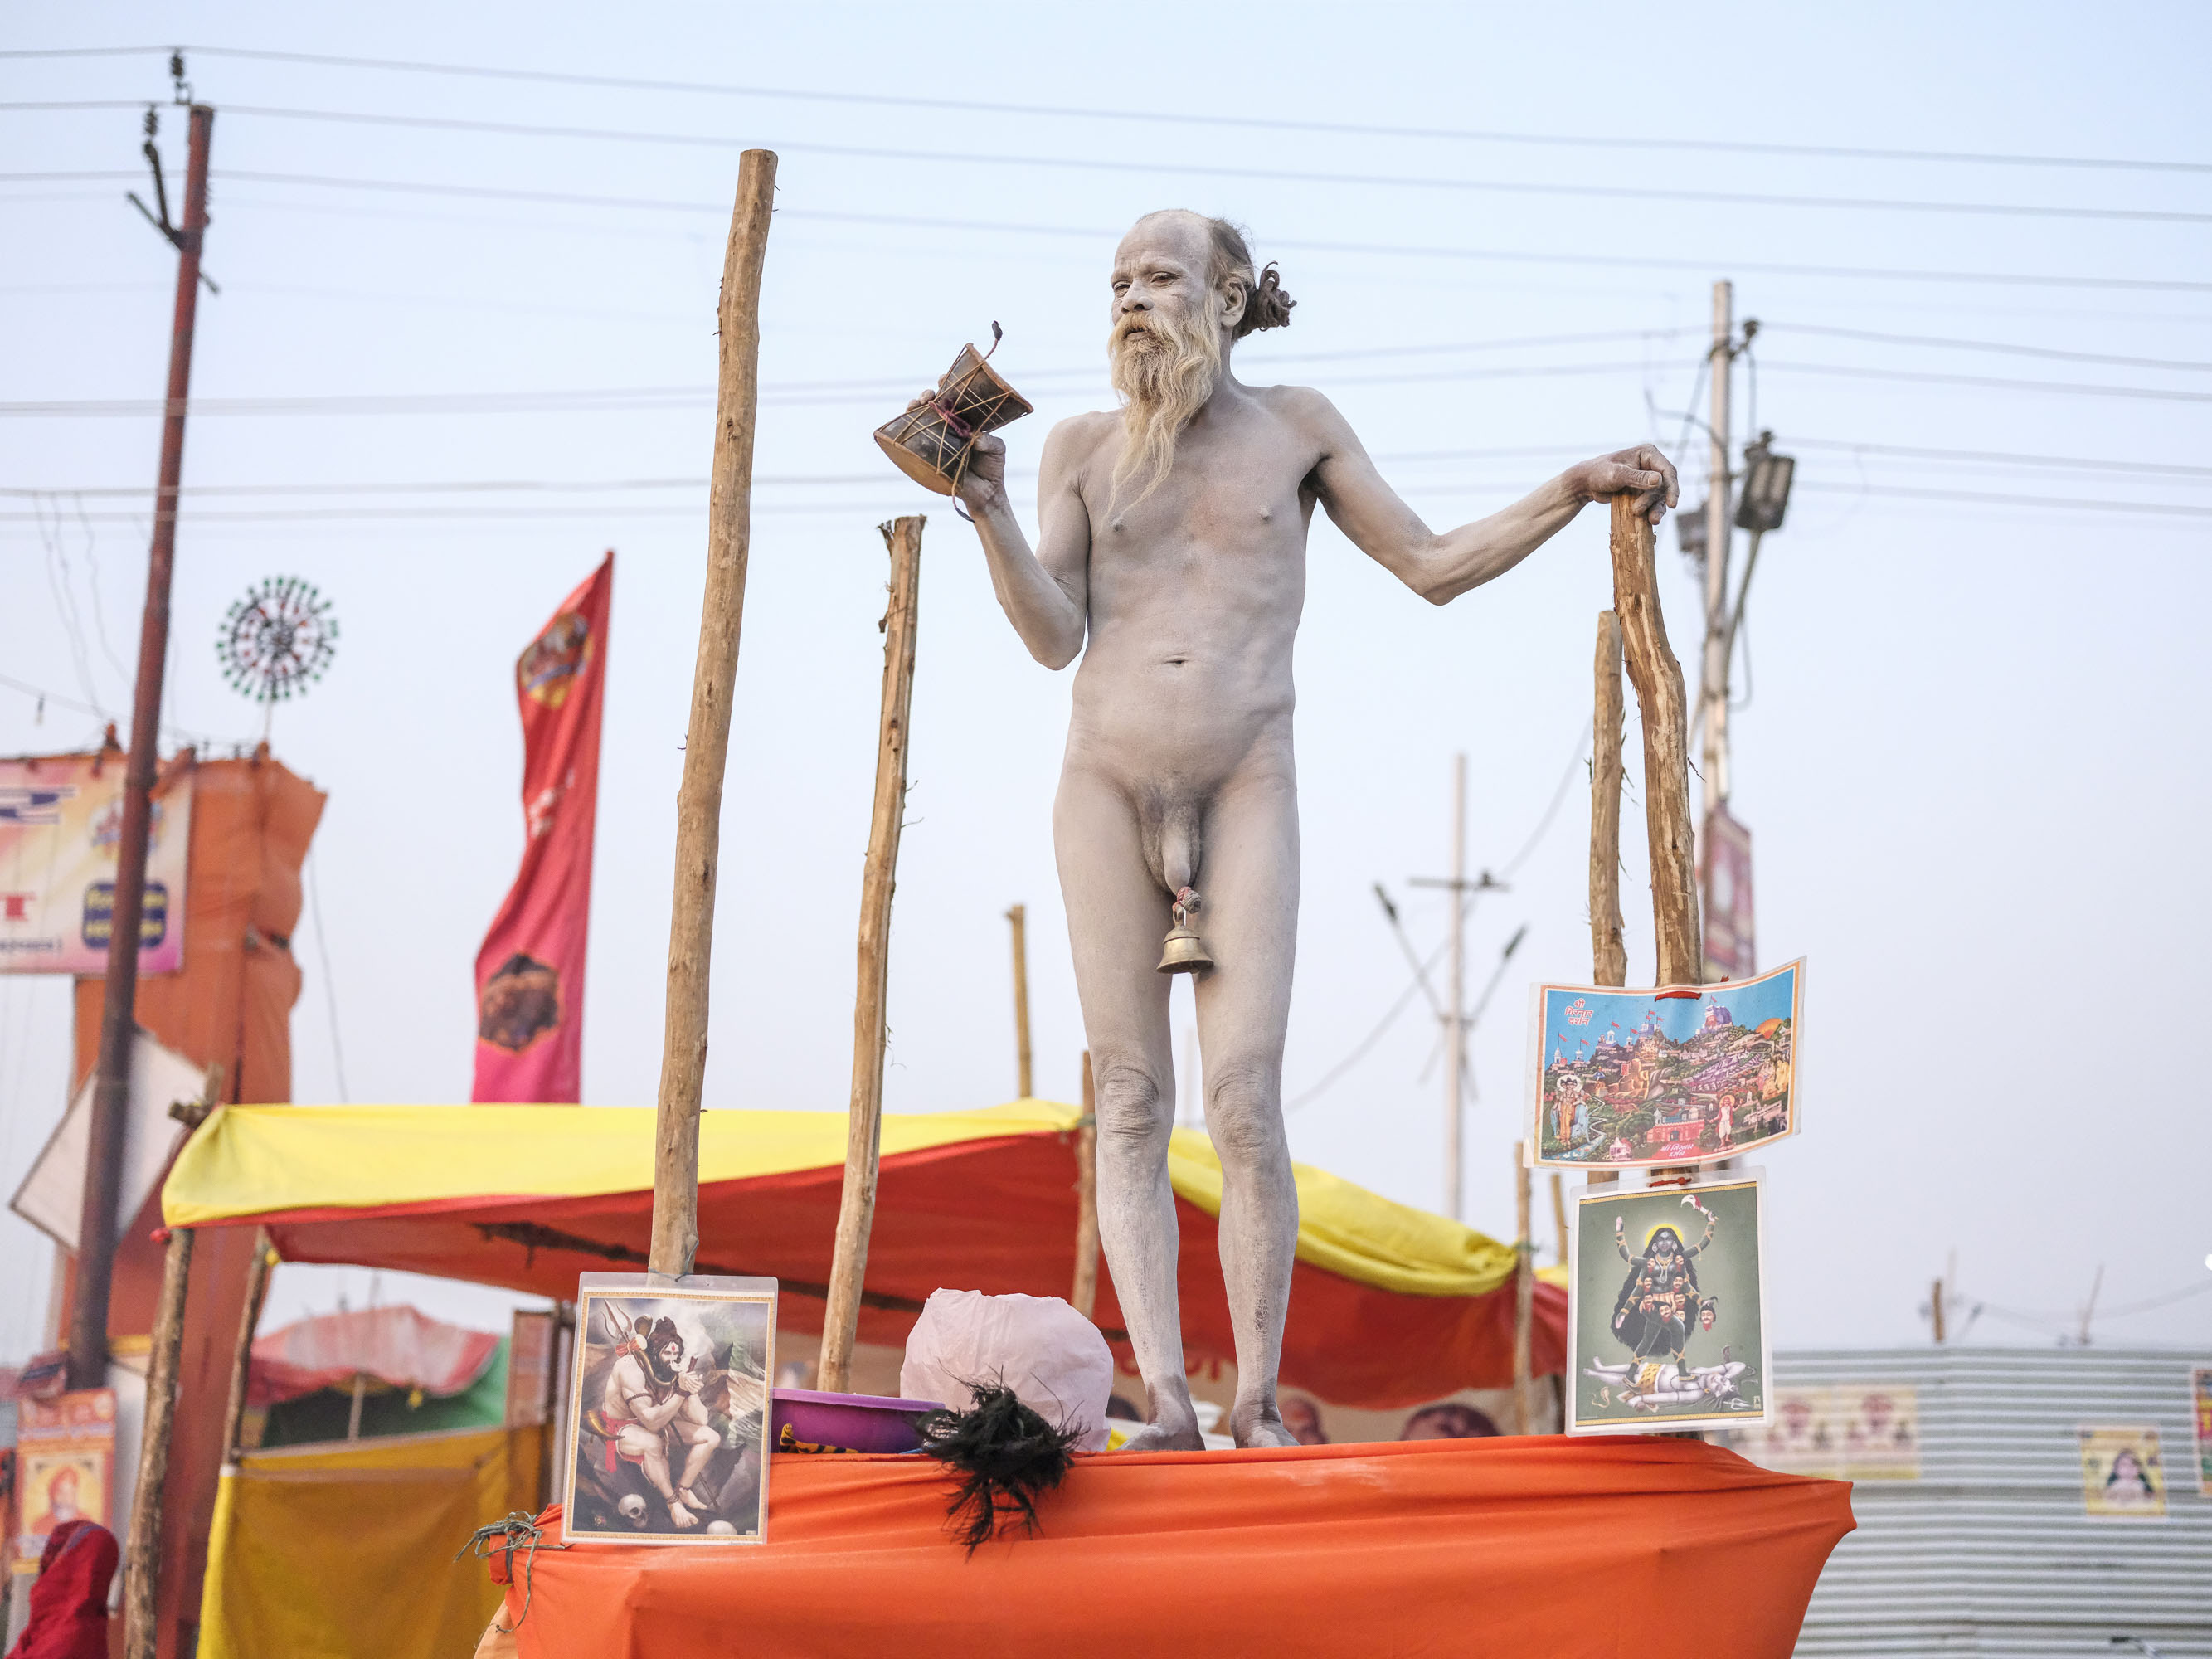 baba naked bell hang on his sex white skin pilgrims Kumbh mela 2019 India Allahabad Prayagraj Ardh hindu religious Festival event rivers photographer jose jeuland photography